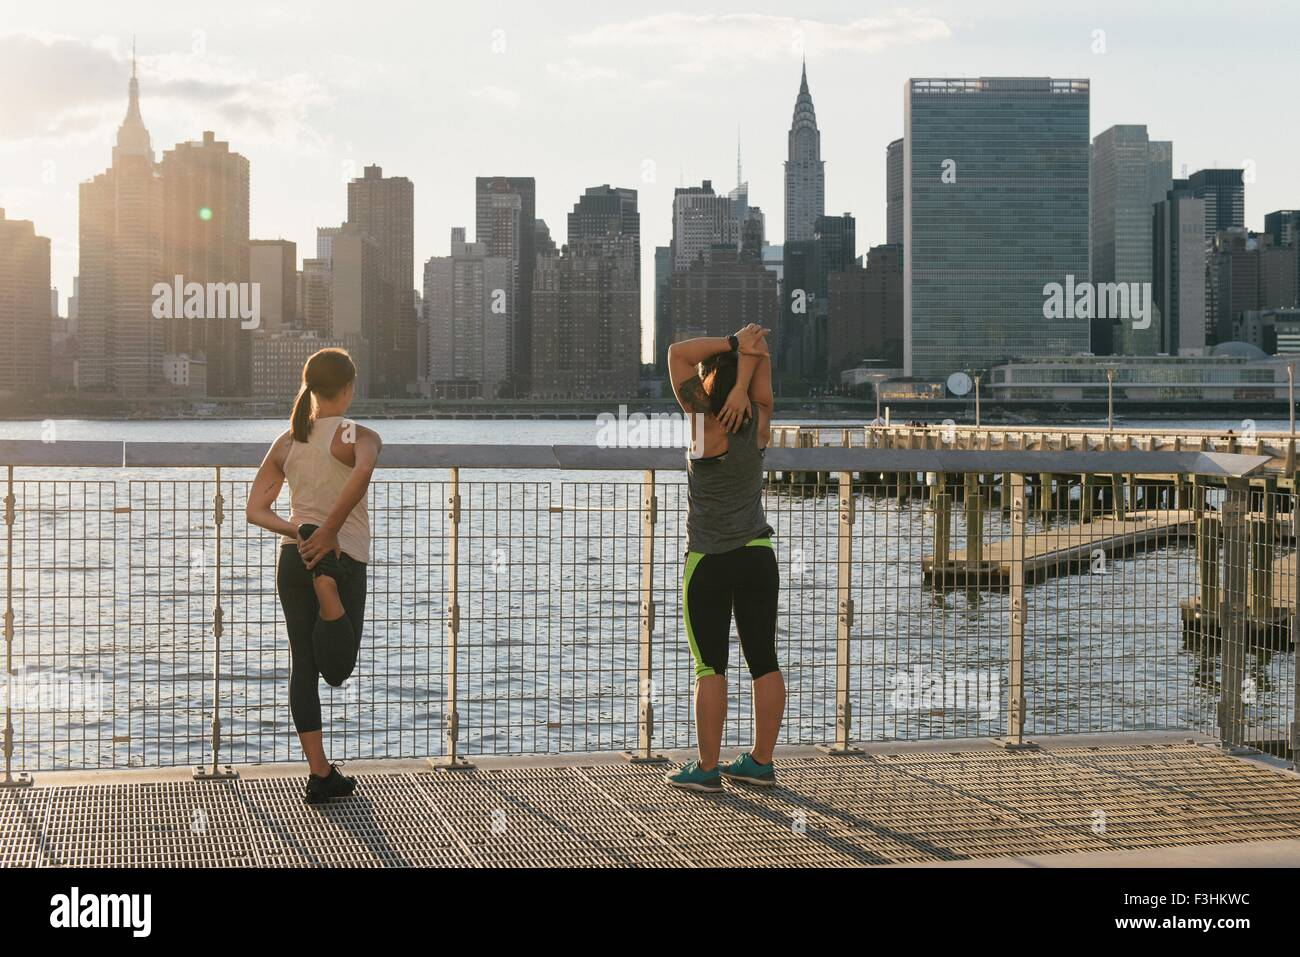 Two friends warming up to exercise together outdoors - Stock Image